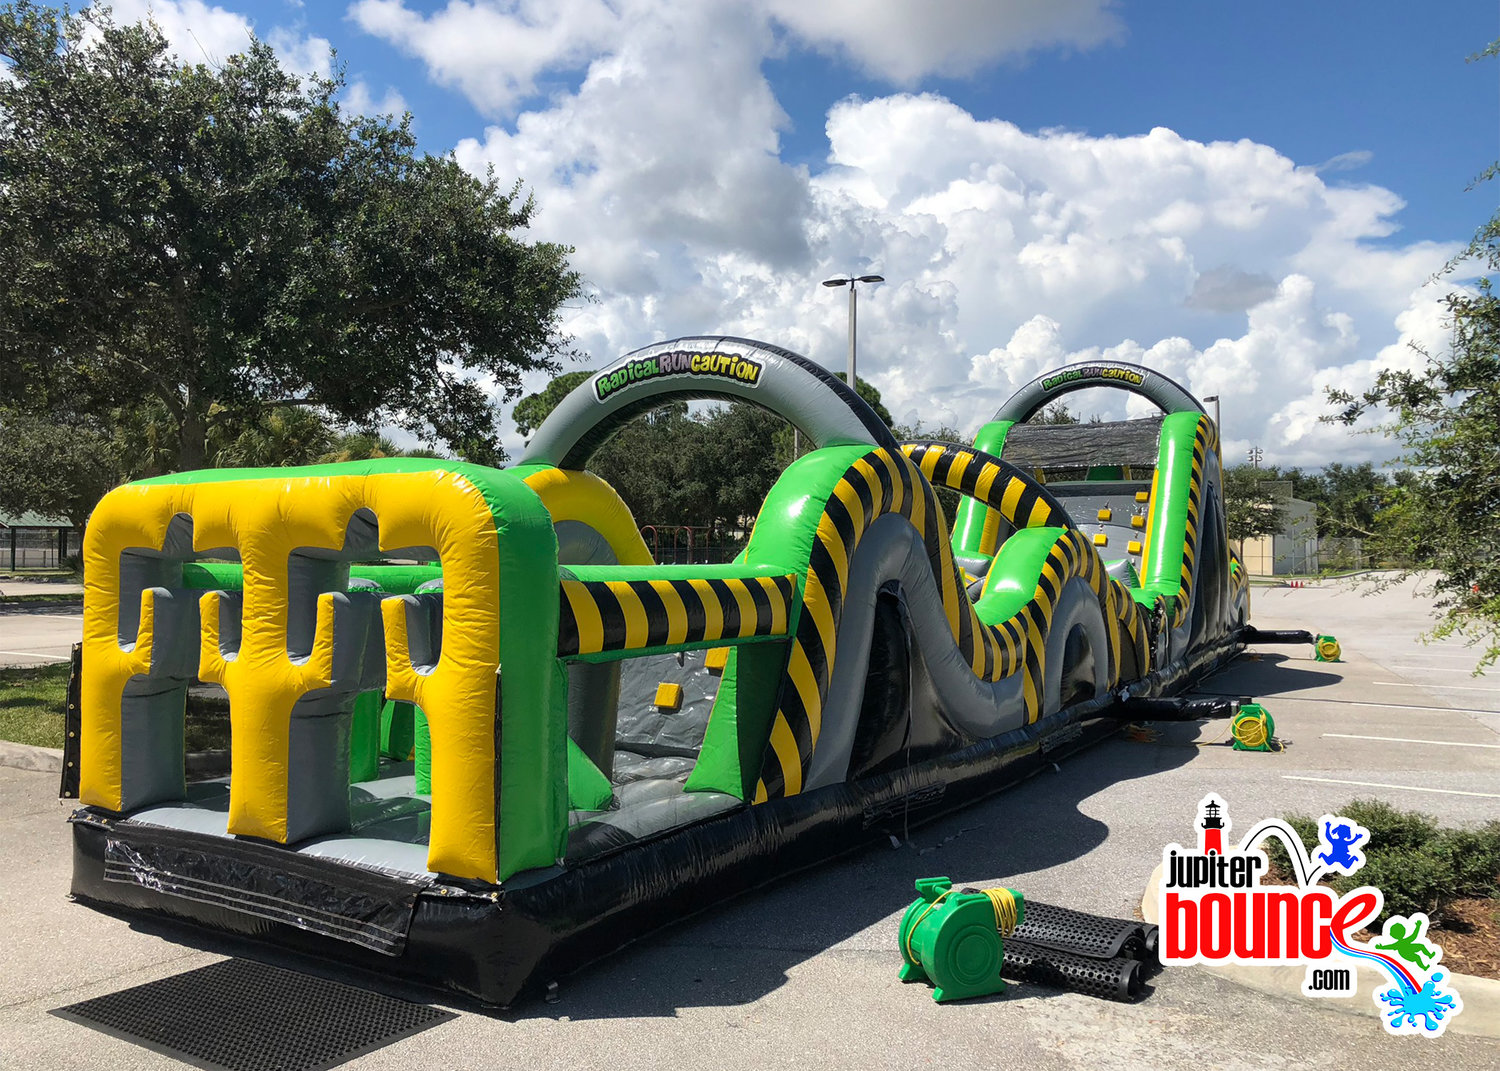 65ftobstaclecourse-jupiterbouncehouse-palmbeachgardensroclwall-photoboothrental.jpg